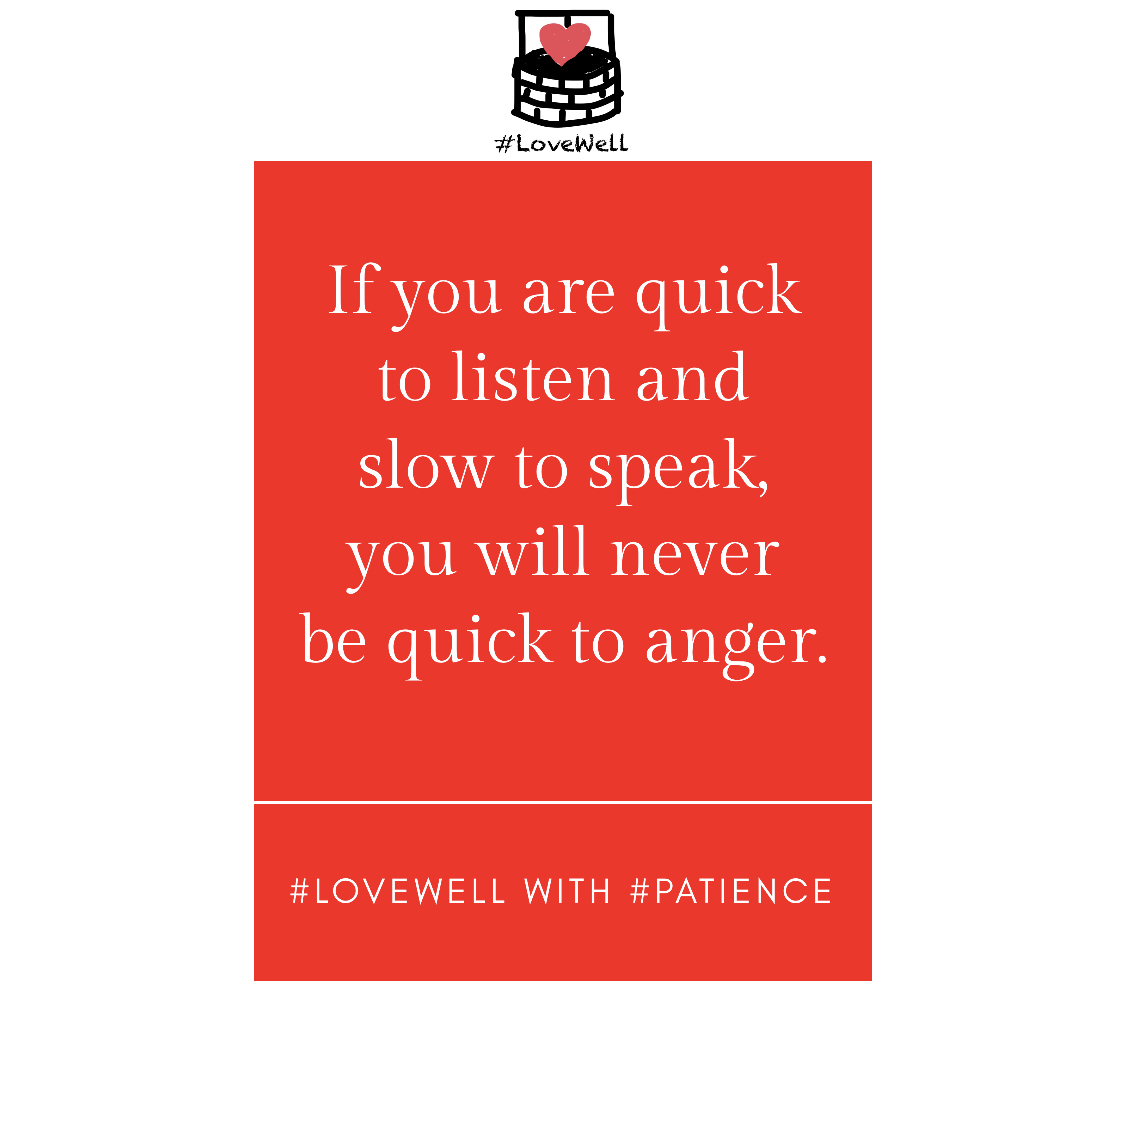 The pathway to perfecting your patience. #LoveWell